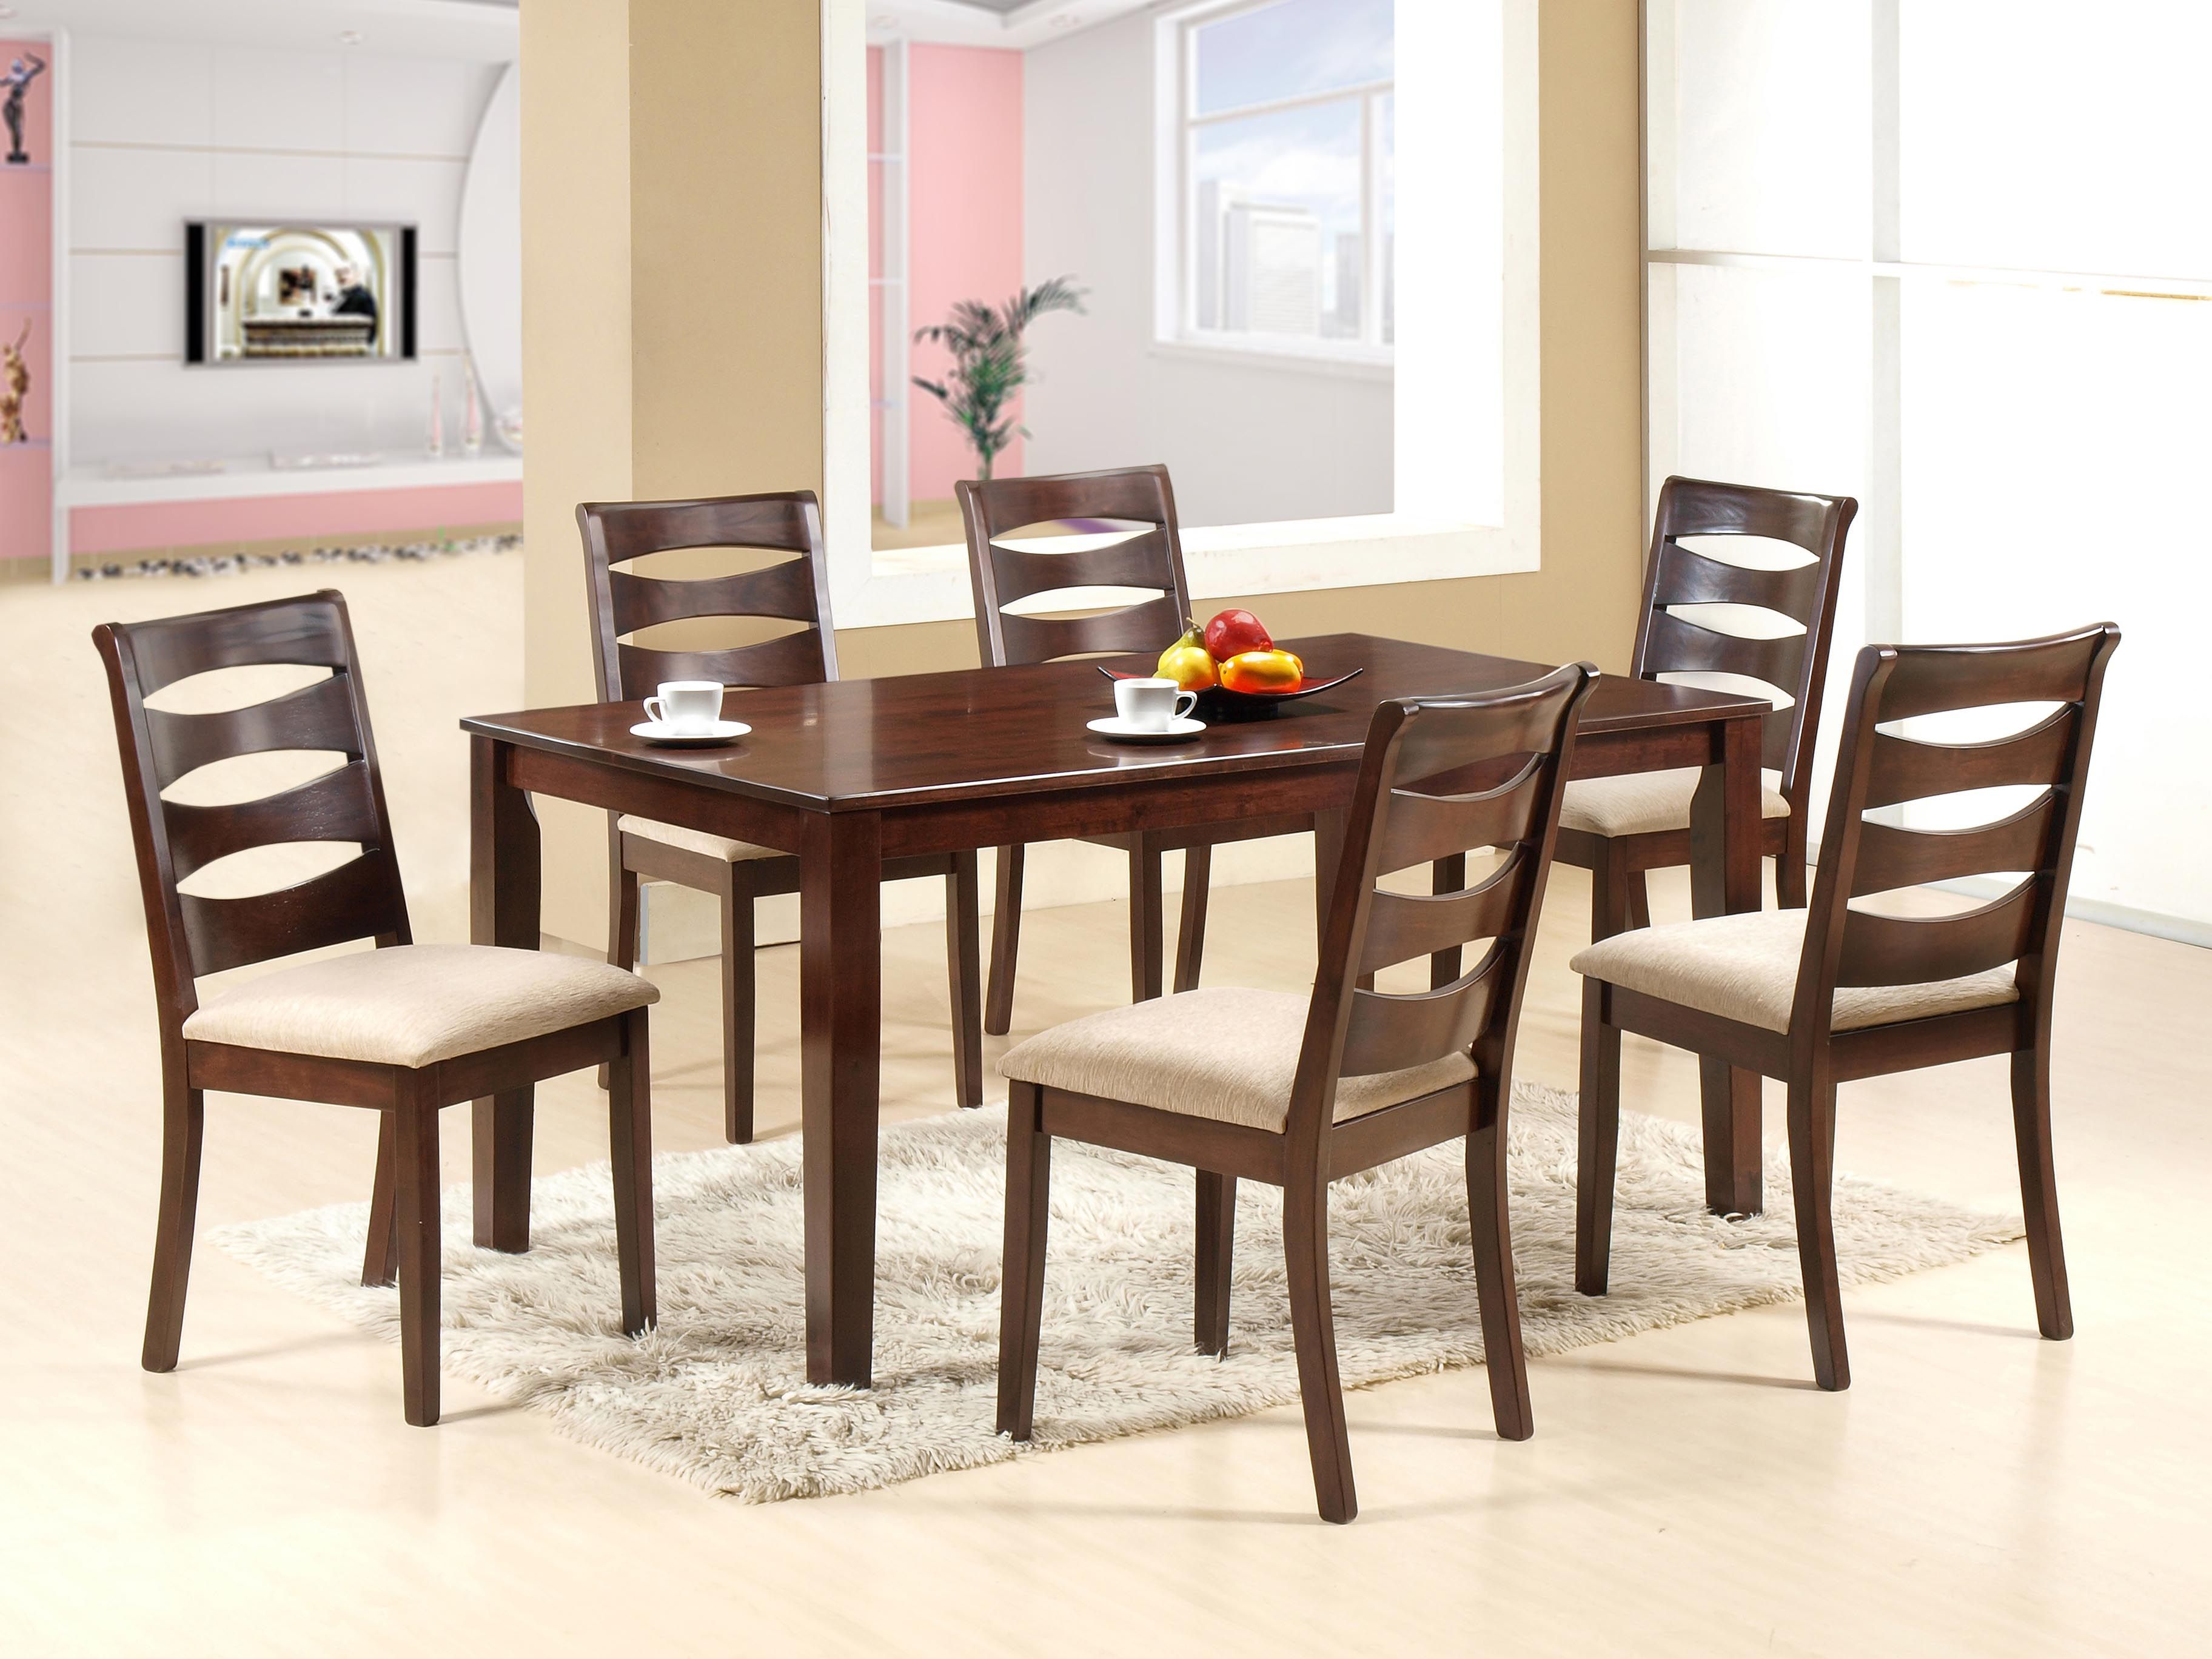 New sandy dining set this dining table s simple sleek design enables it to perfectly